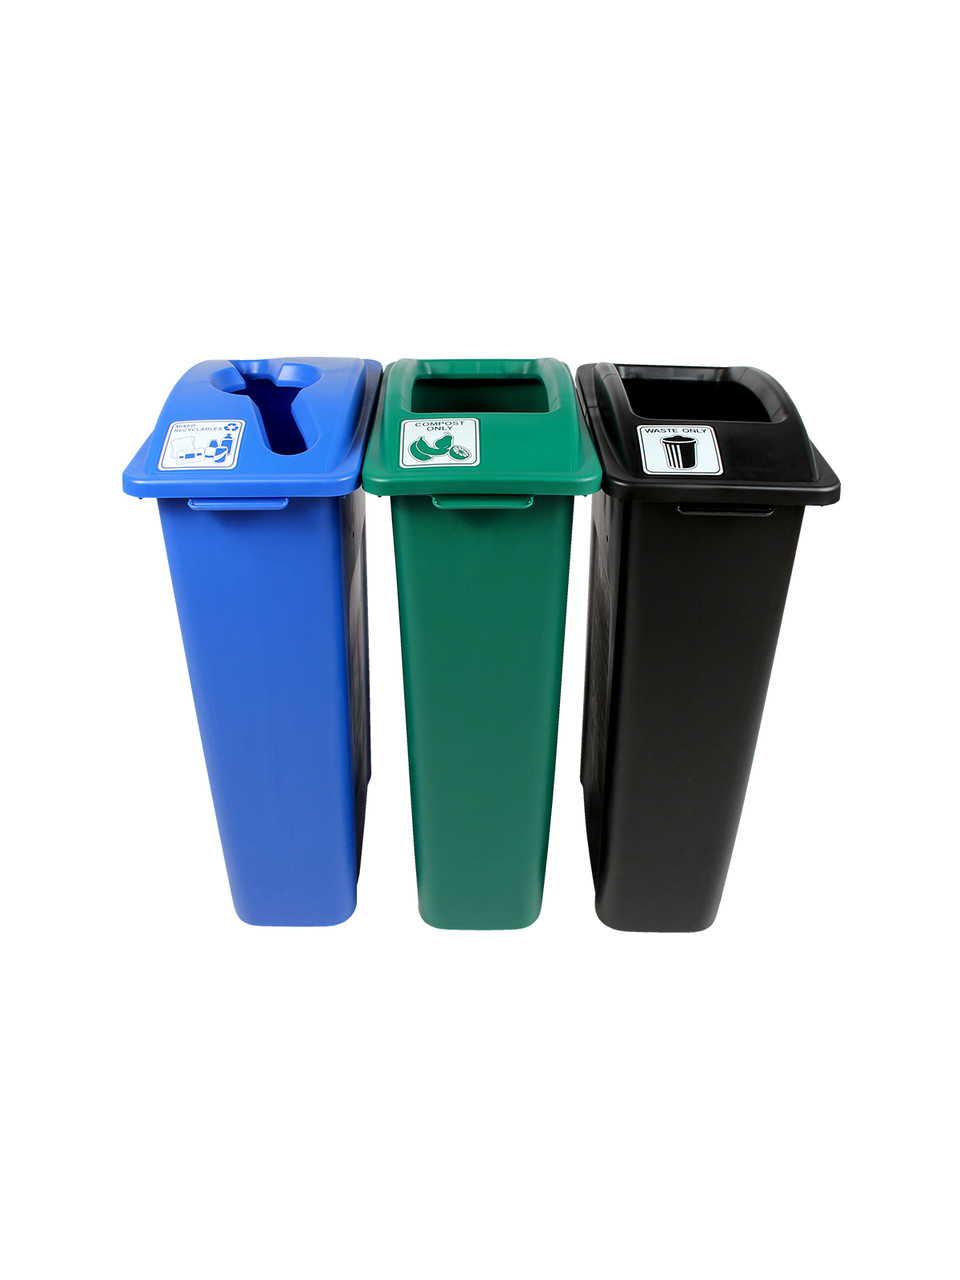 69 Gallon Simple Sort Skinny Recycle Bin Center 8106044-244 (Mixed, Compost, Waste)